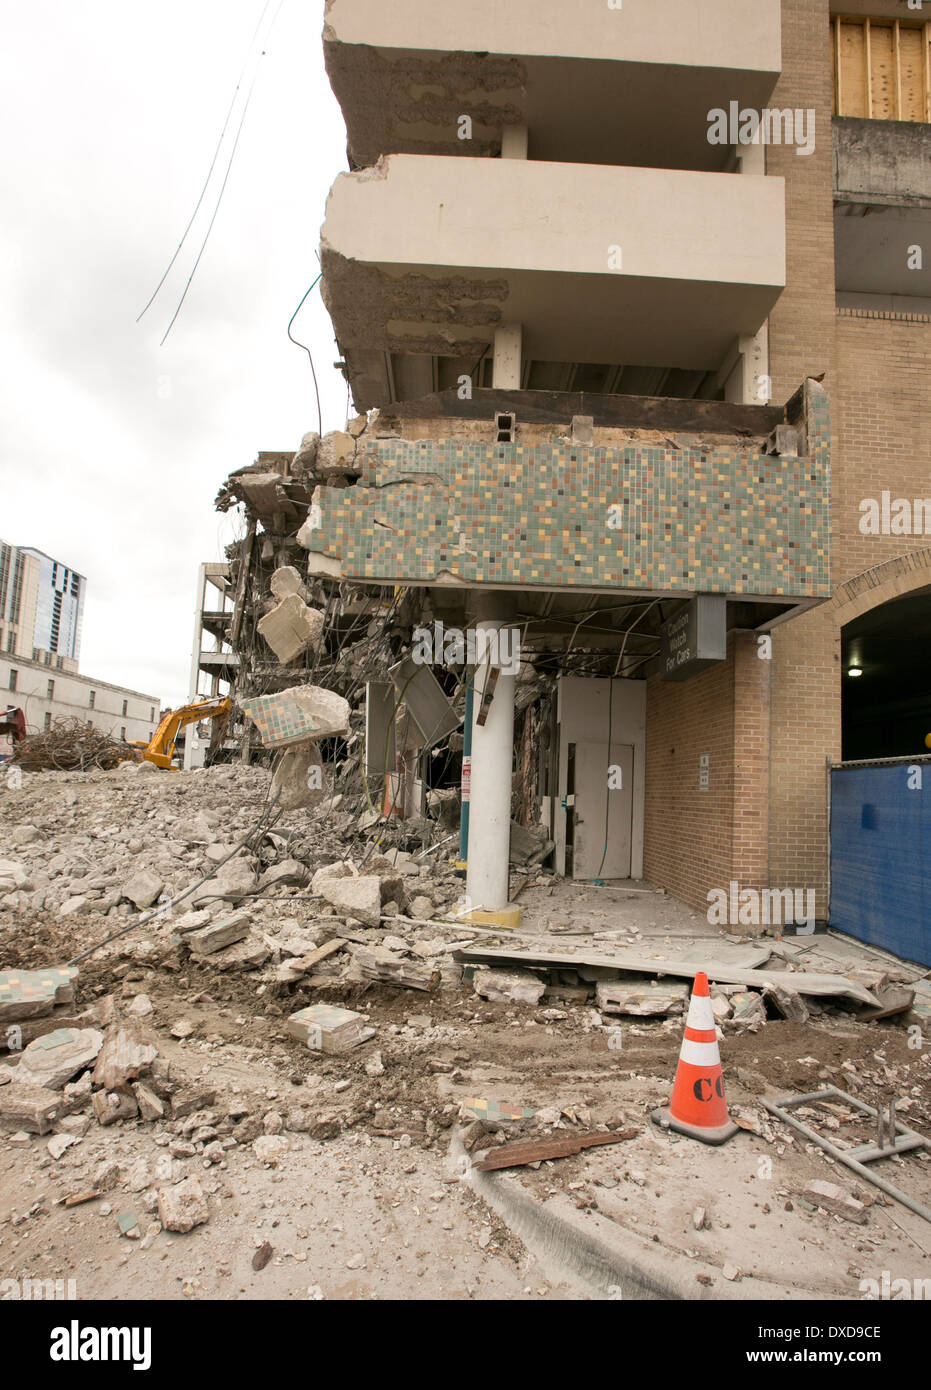 partially demolished building in downtown area of Austin, Texas - Stock Image